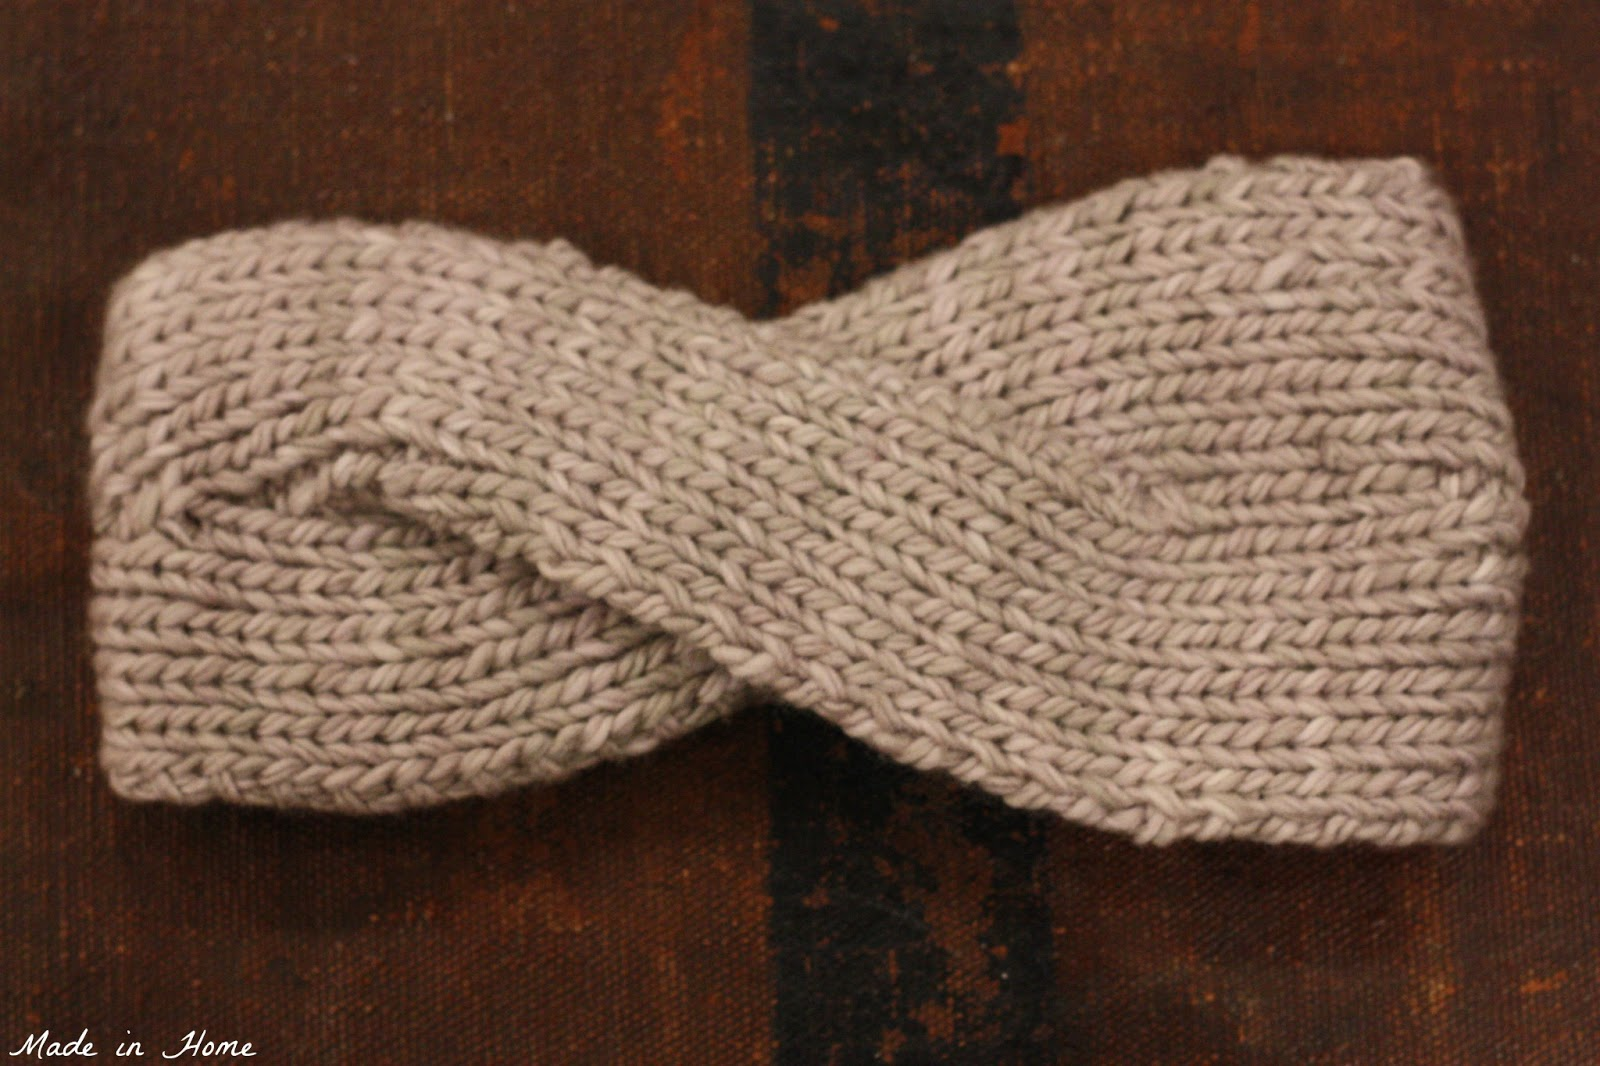 Made in Home: Vintage Headband {Knitting}